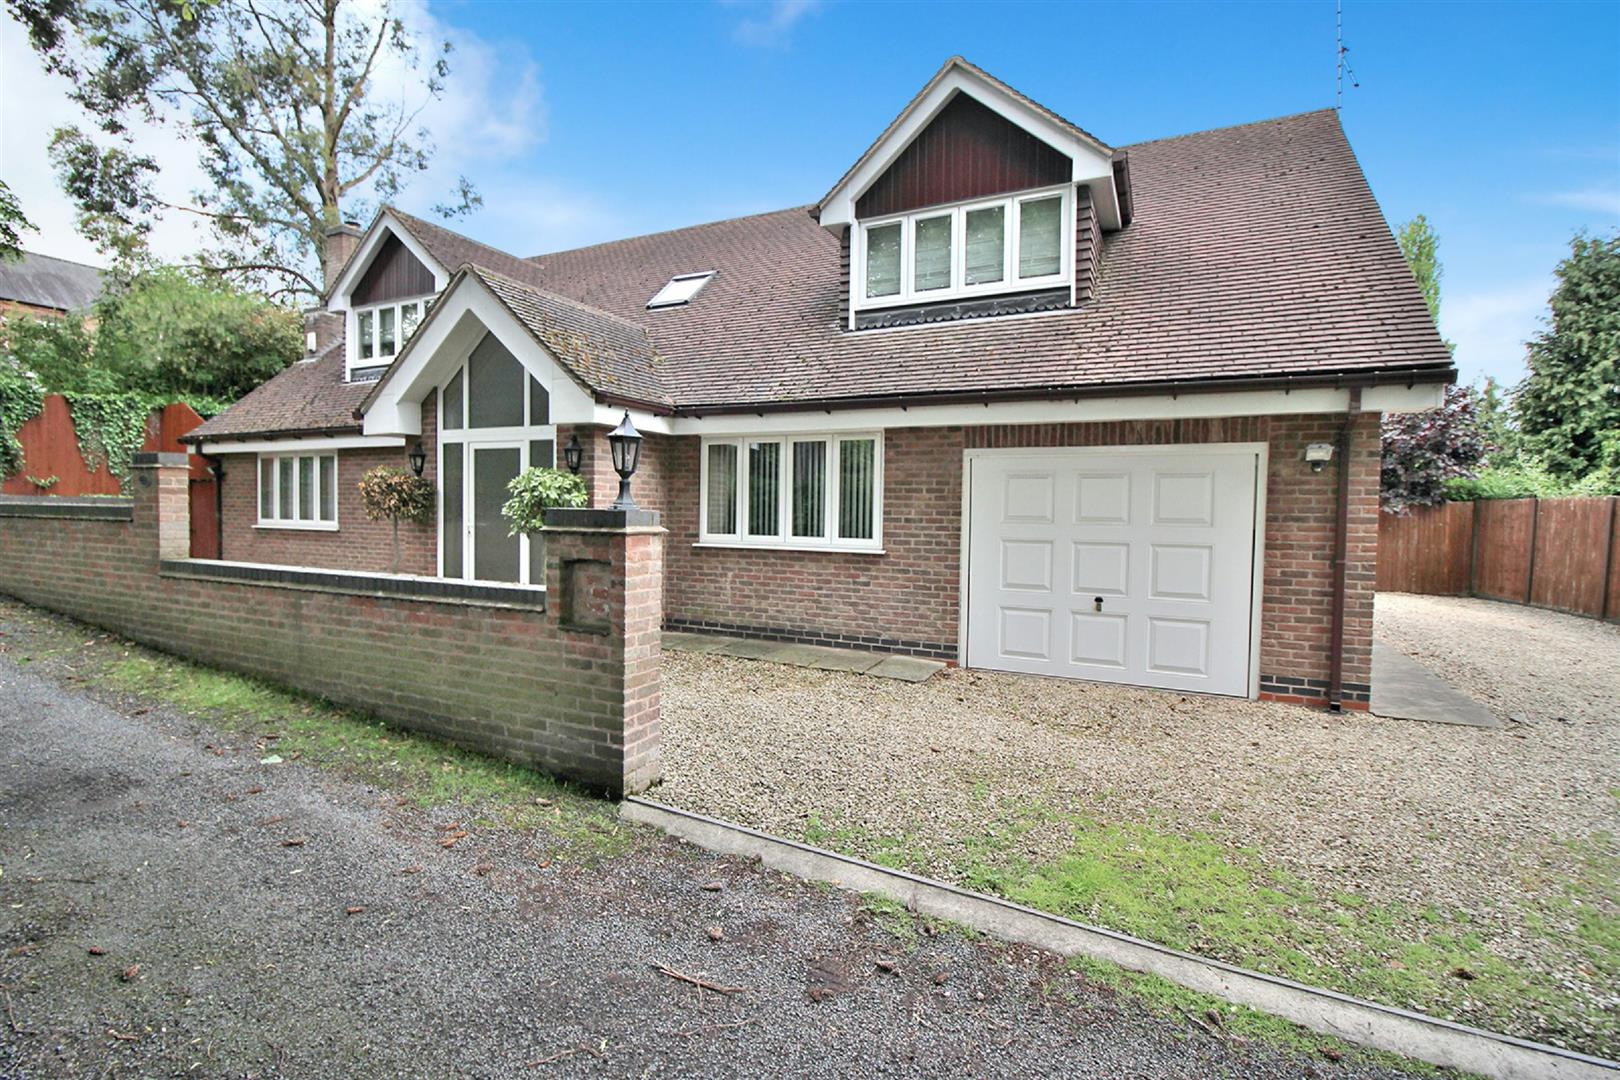 4 Bedrooms Detached House for sale in Bridle Road, Bramcote